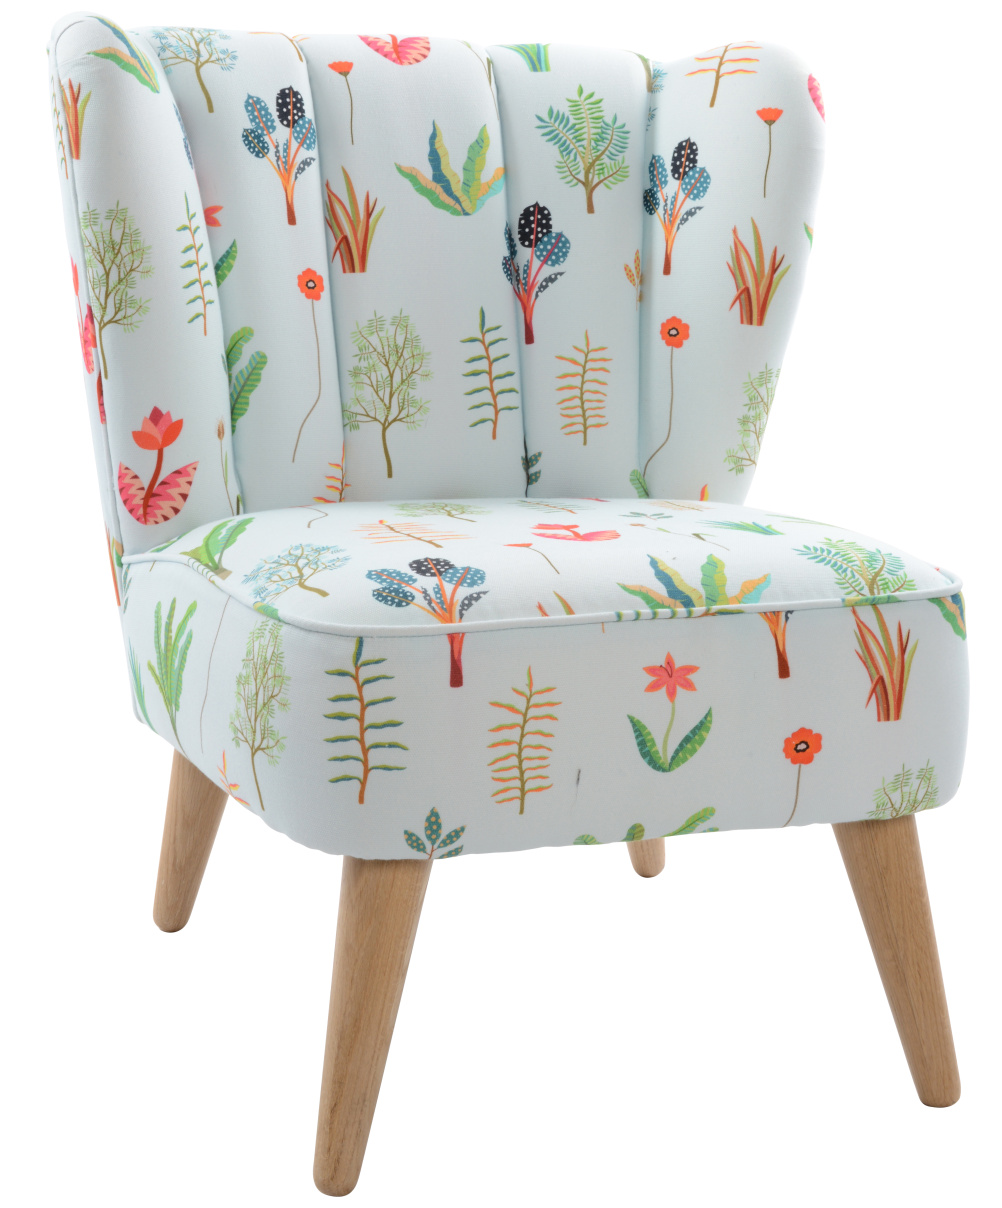 Chair with Hvass and Hannibal pattern